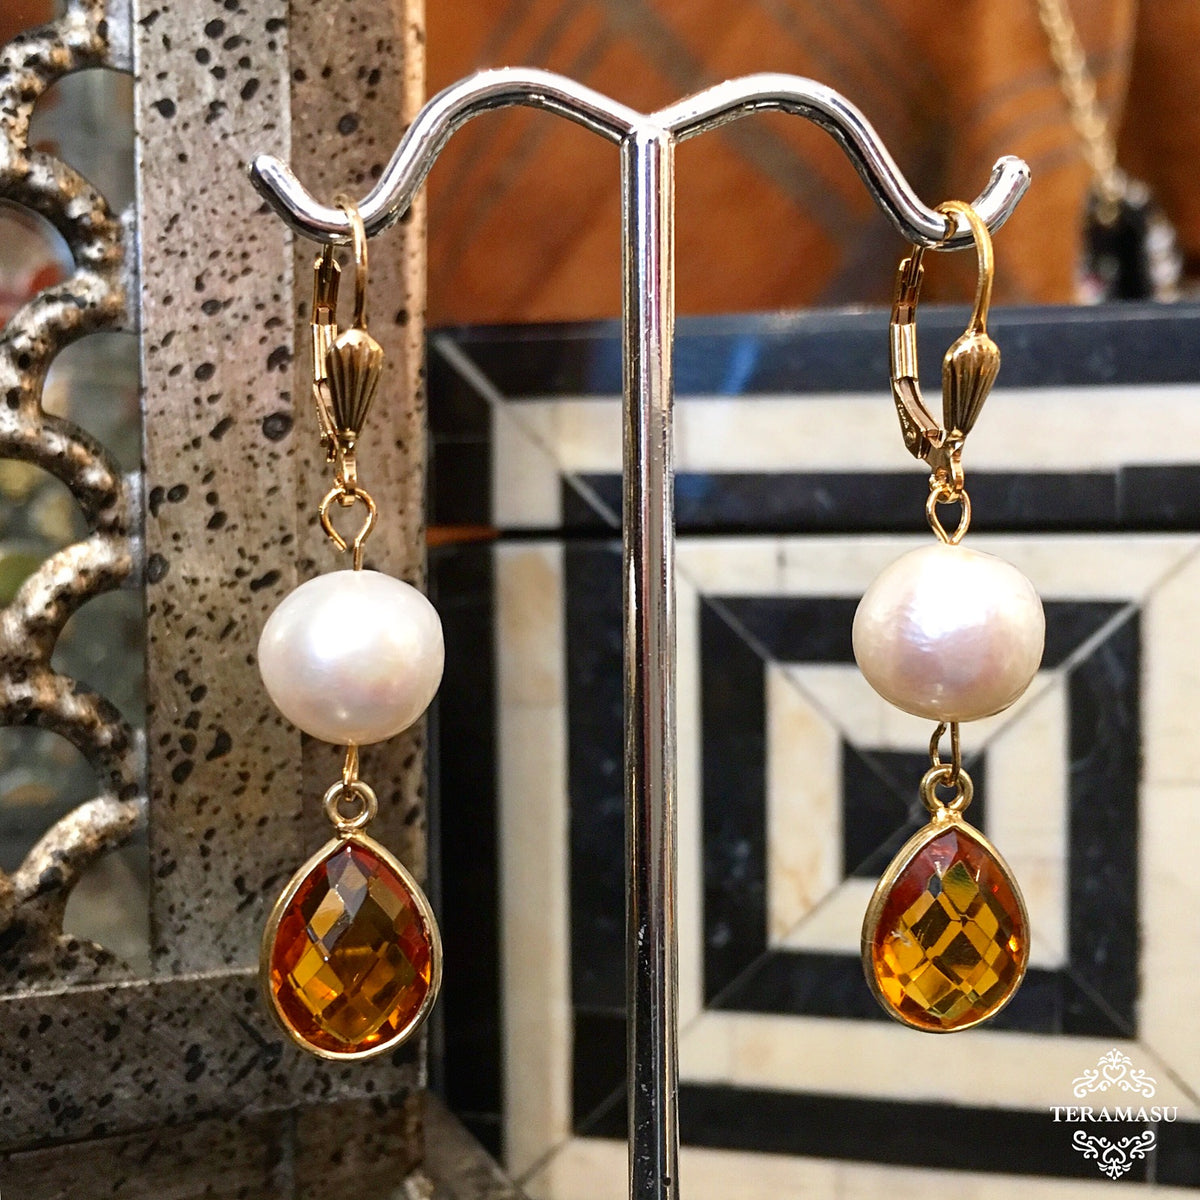 Saturday Stunner: Gorgeously Classic, Handmade Designer Teramasu Citrine and Freshwater Pearl Drop Earrings